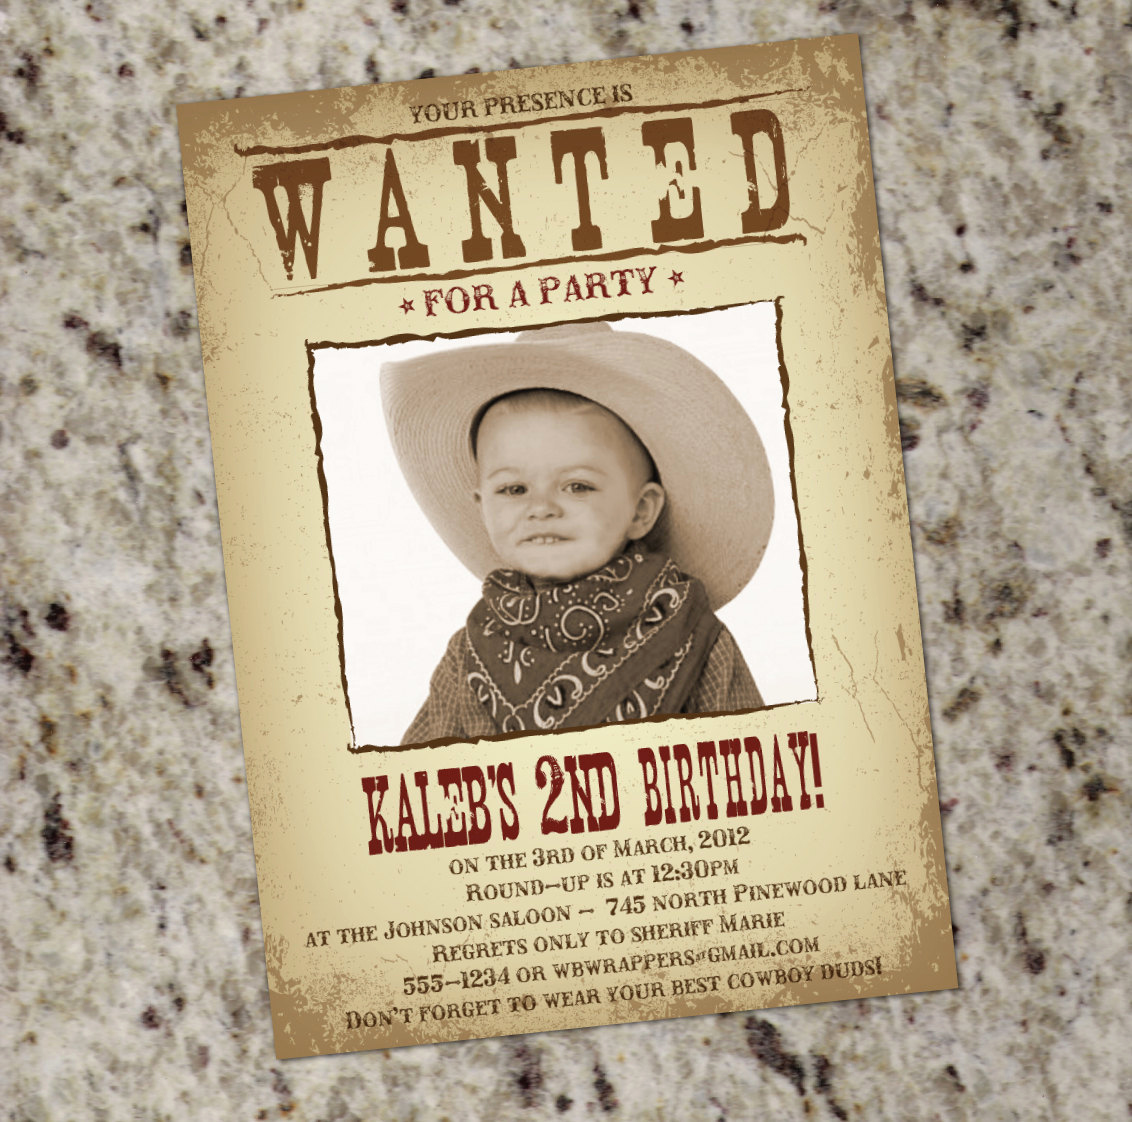 Western themed Invitation Wording New Wanted Poster Western themed Party Invitation Printable